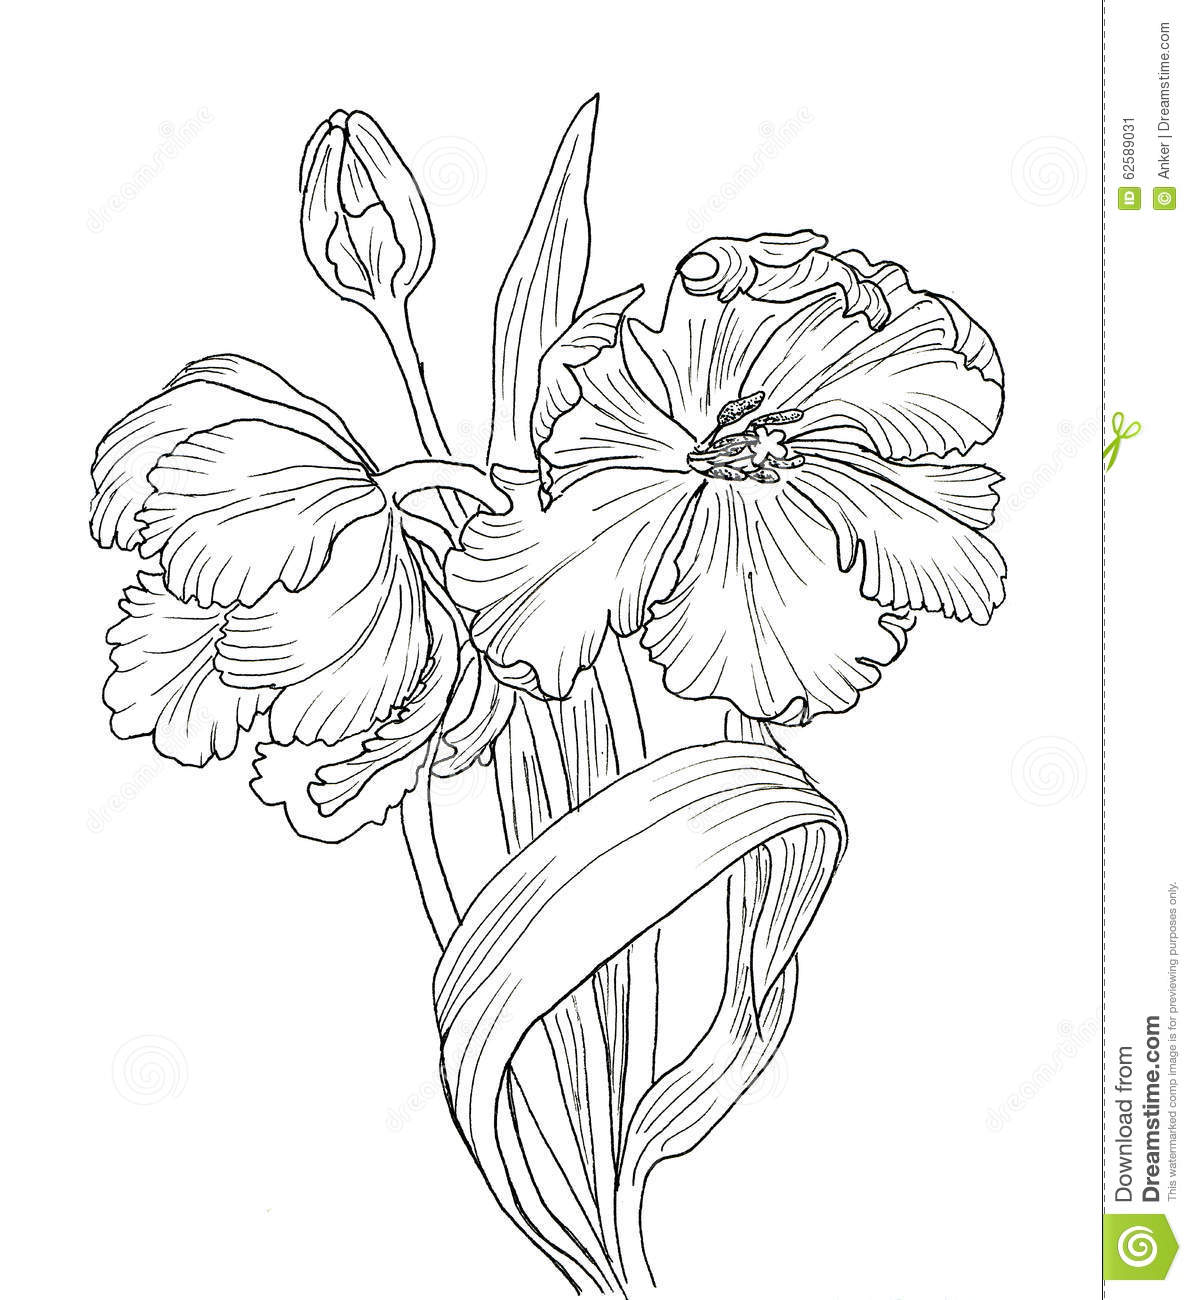 Line Drawing Of Tulip Flower : Hand drawn decorative tulips for your design stock